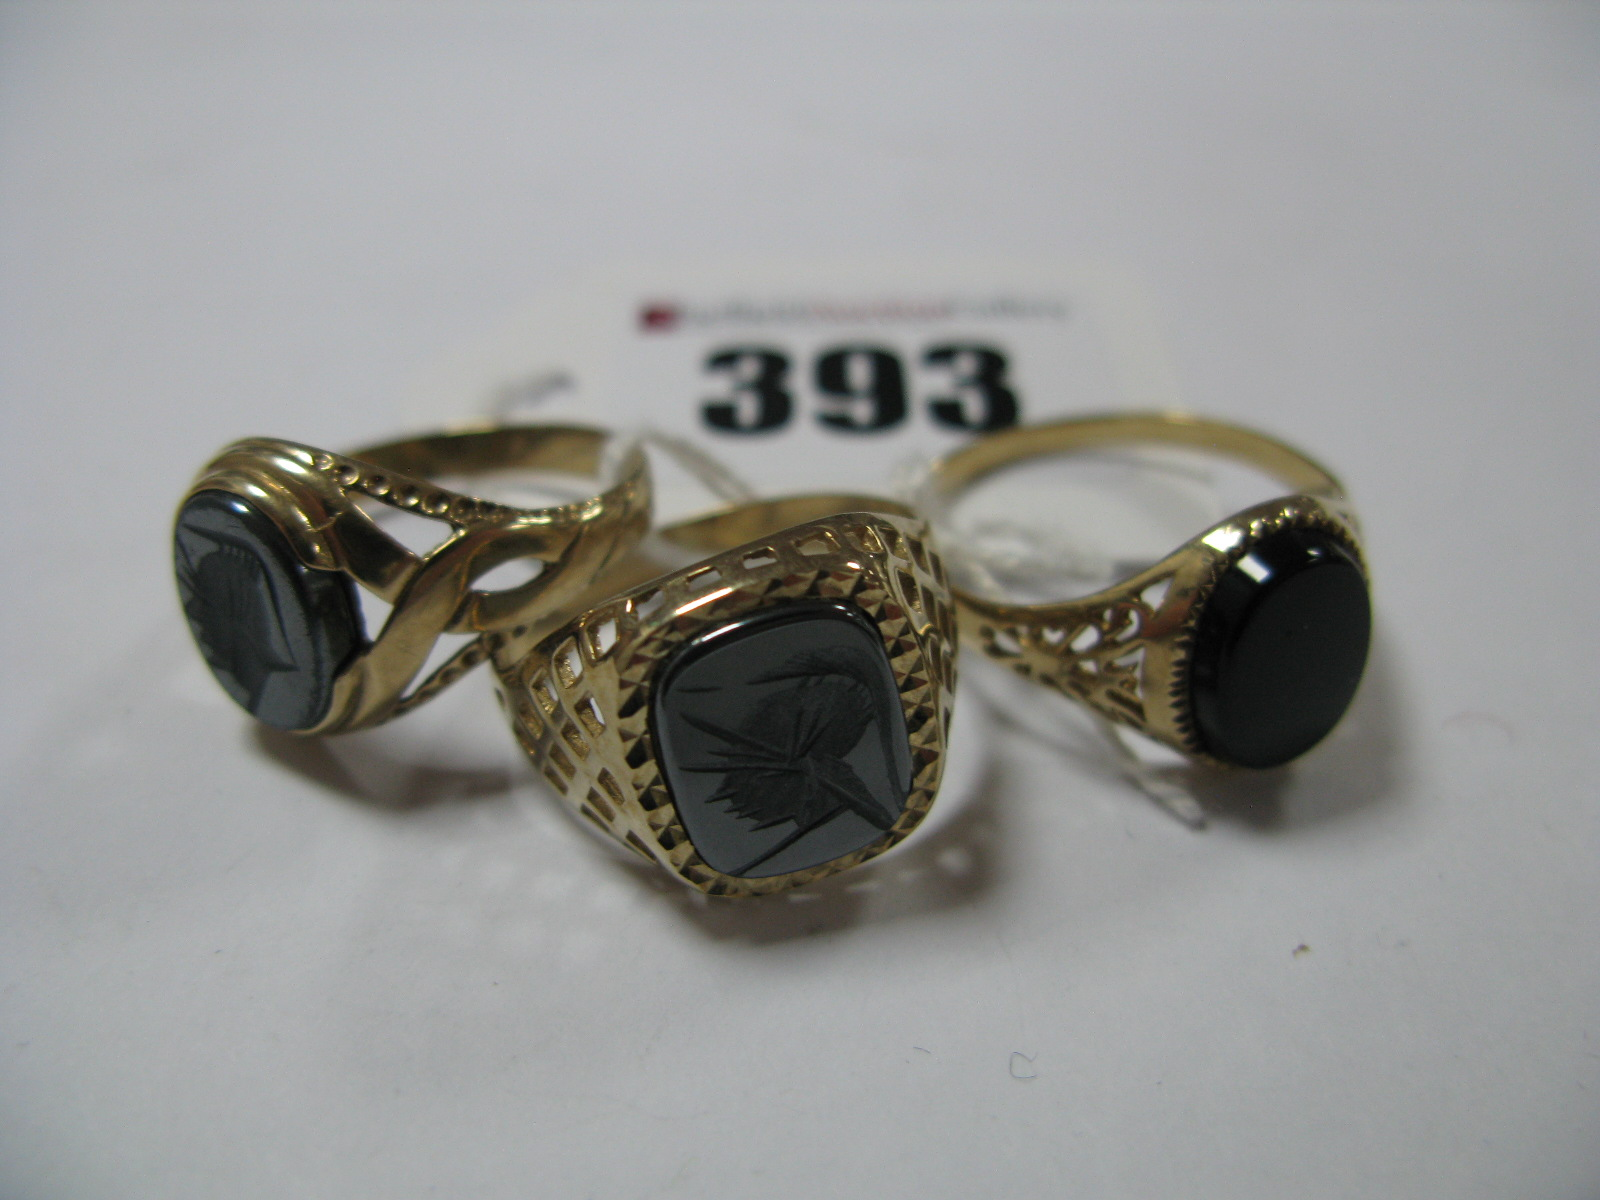 Lot 393 - Three 9ct Gold Gent's Signet Style Rings, with hardstone inset panels, between openwork textured